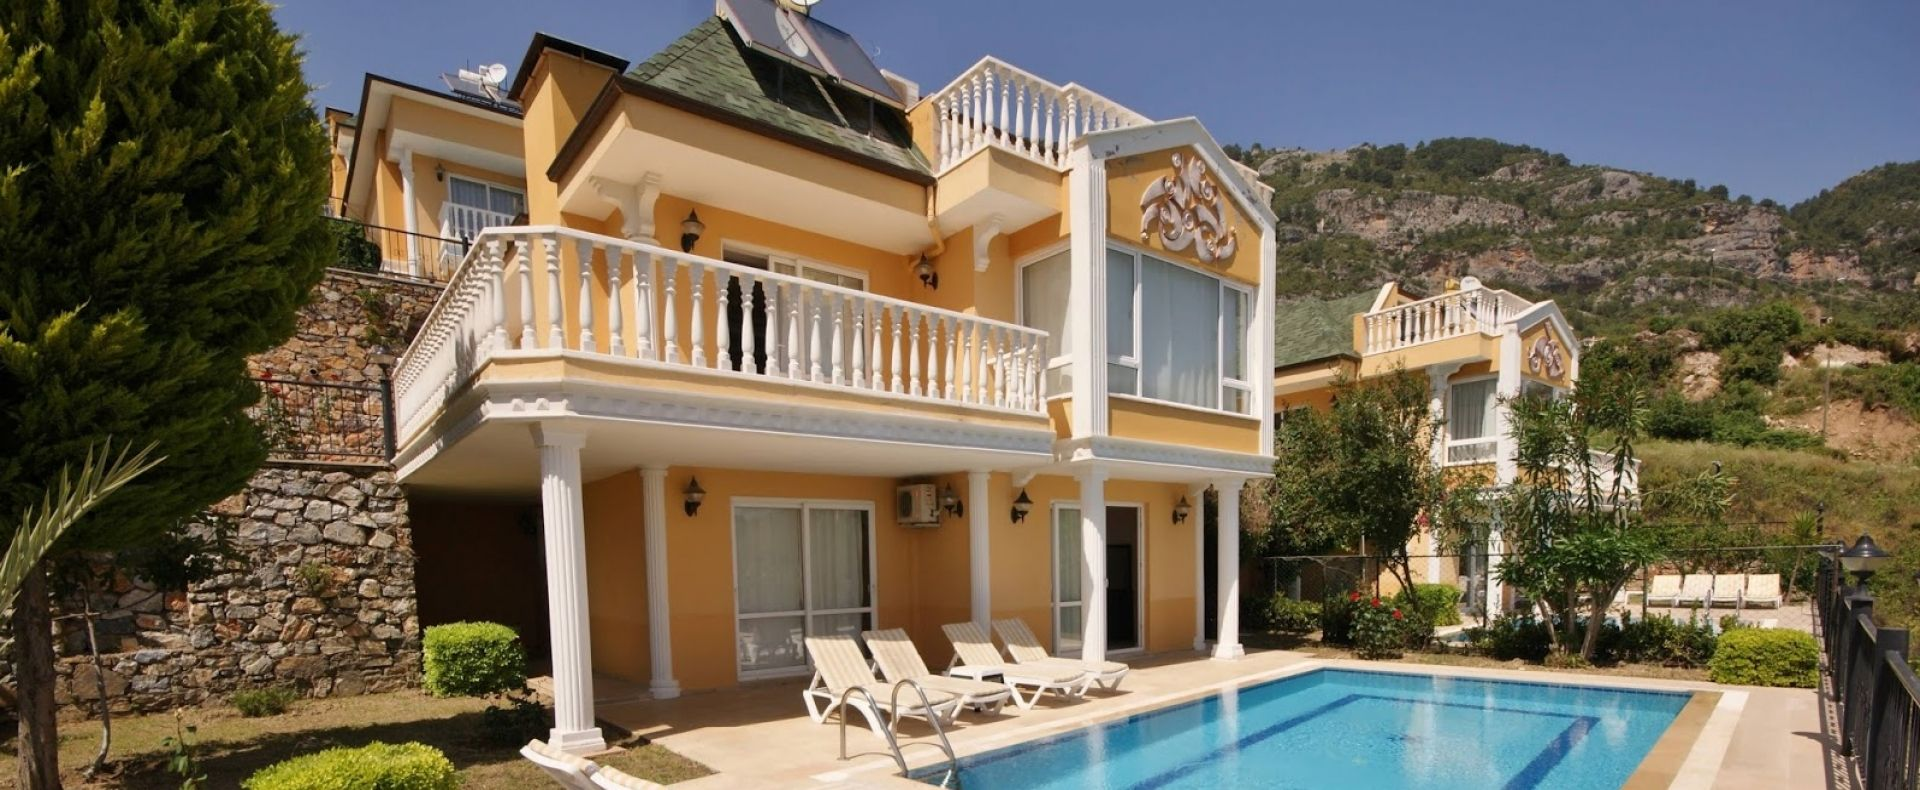 Where Can I Buy Luxury Properties In Turkey, Istanbul?